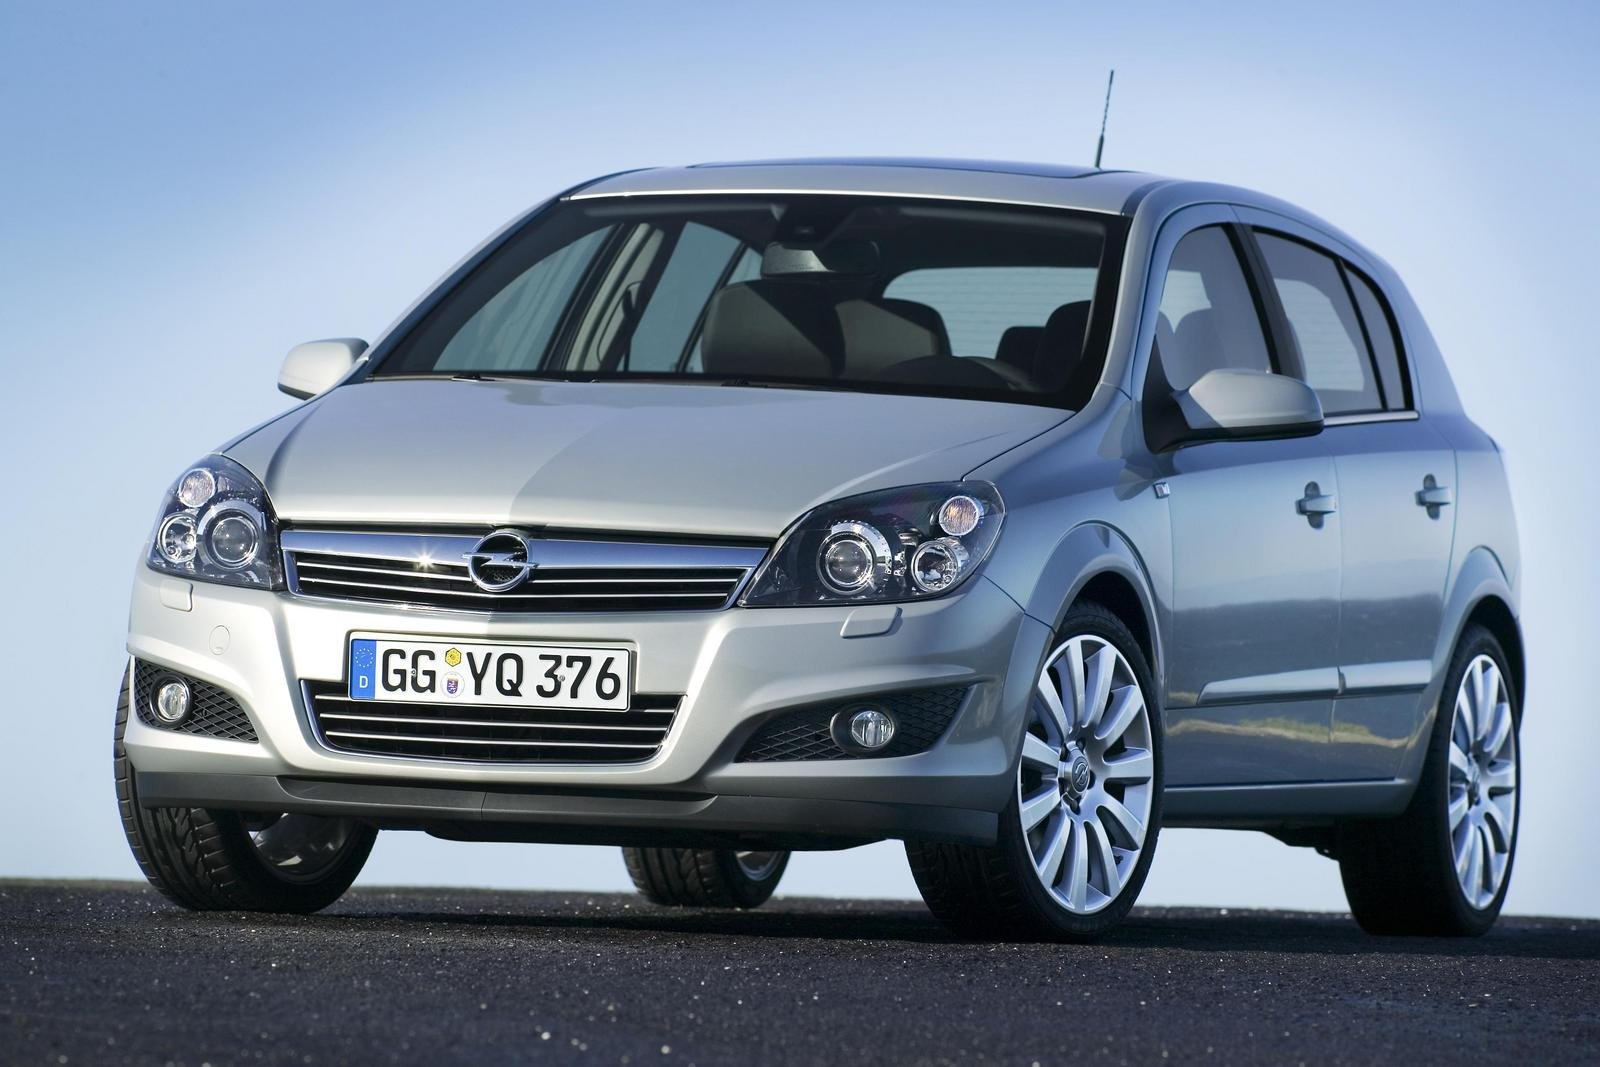 European Motor Cars >> 2007 Opel Astra Facelift Review - Top Speed